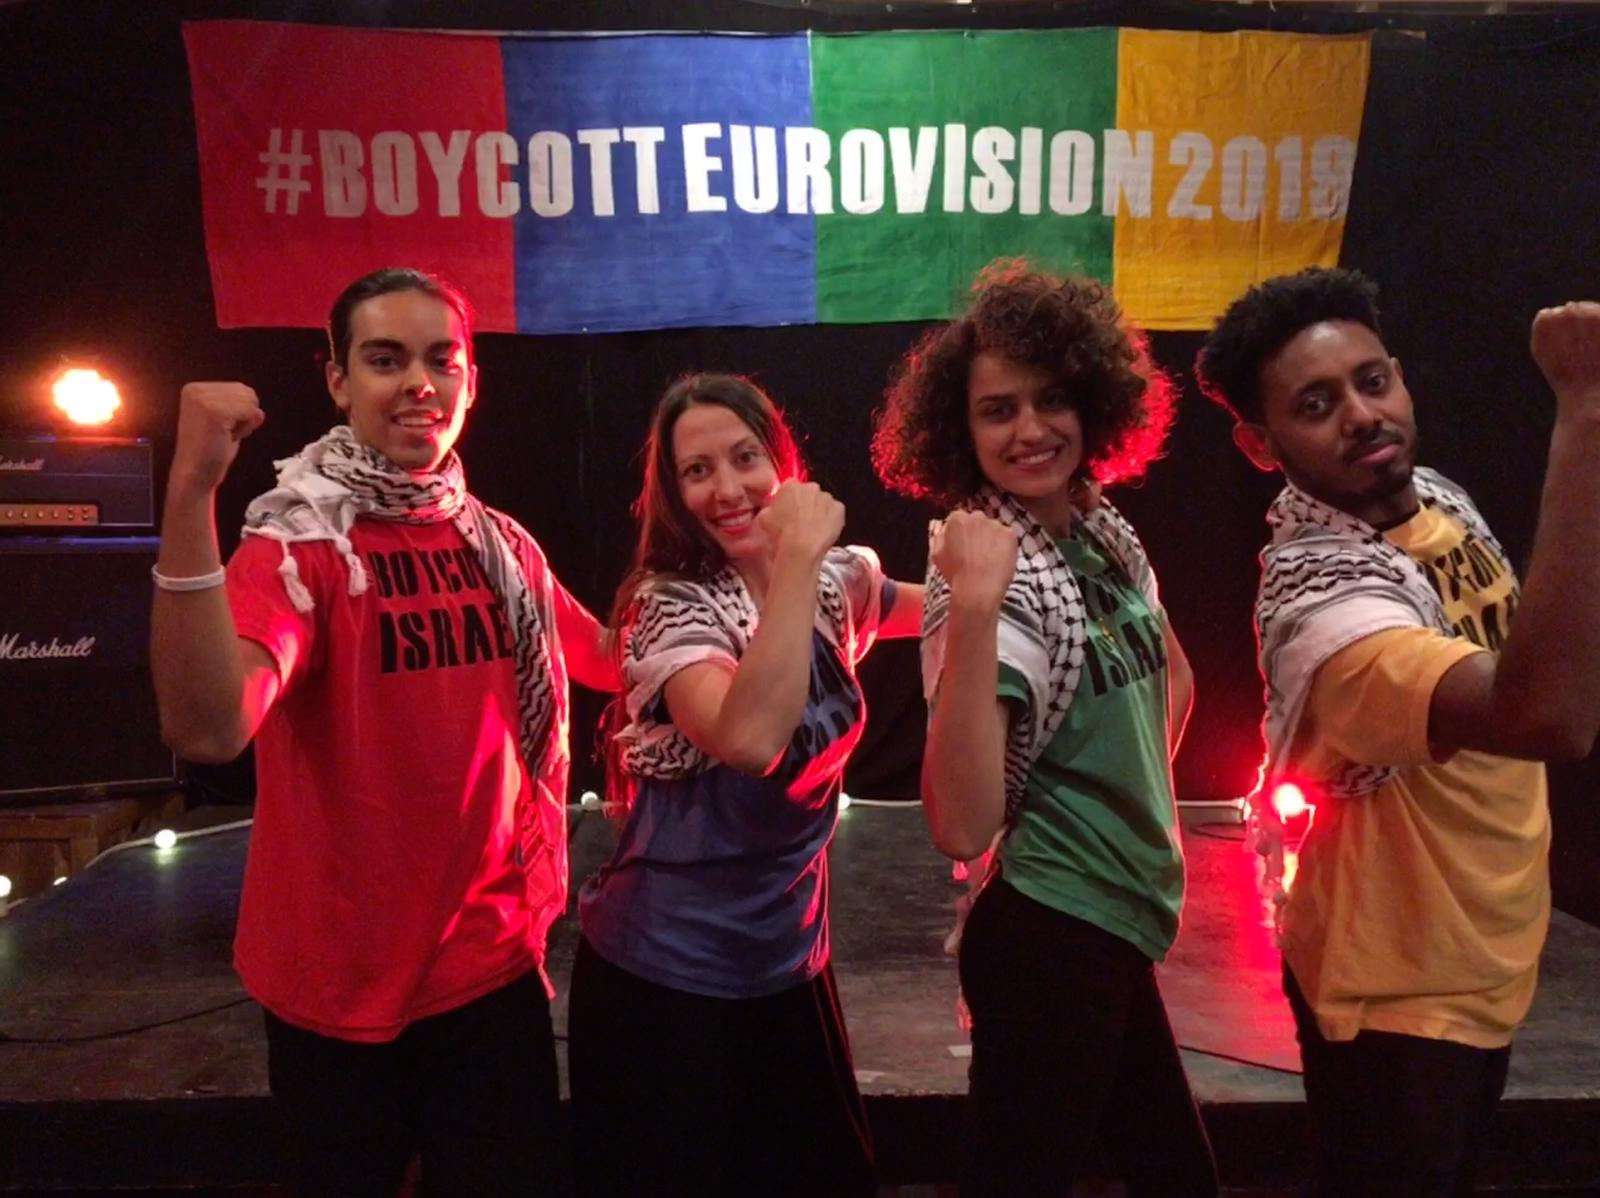 'Boycott Israel Eurovision' song released by London activist group